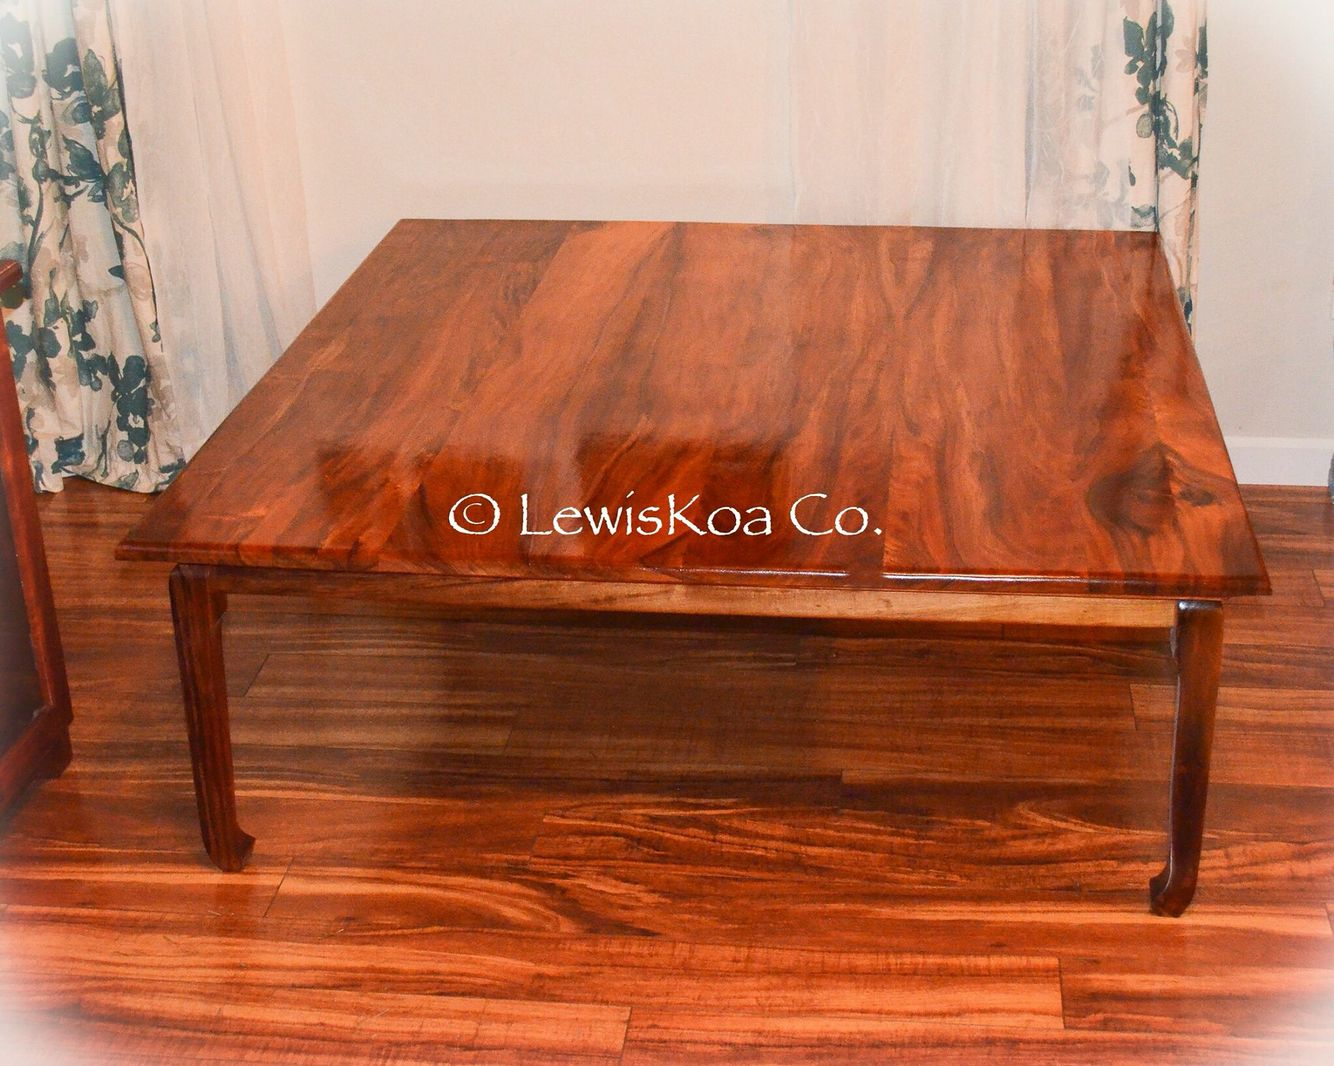 Beautiful Hawaiian Koa Wood Coffee Table From Lewiskoa Co At Gotkoa